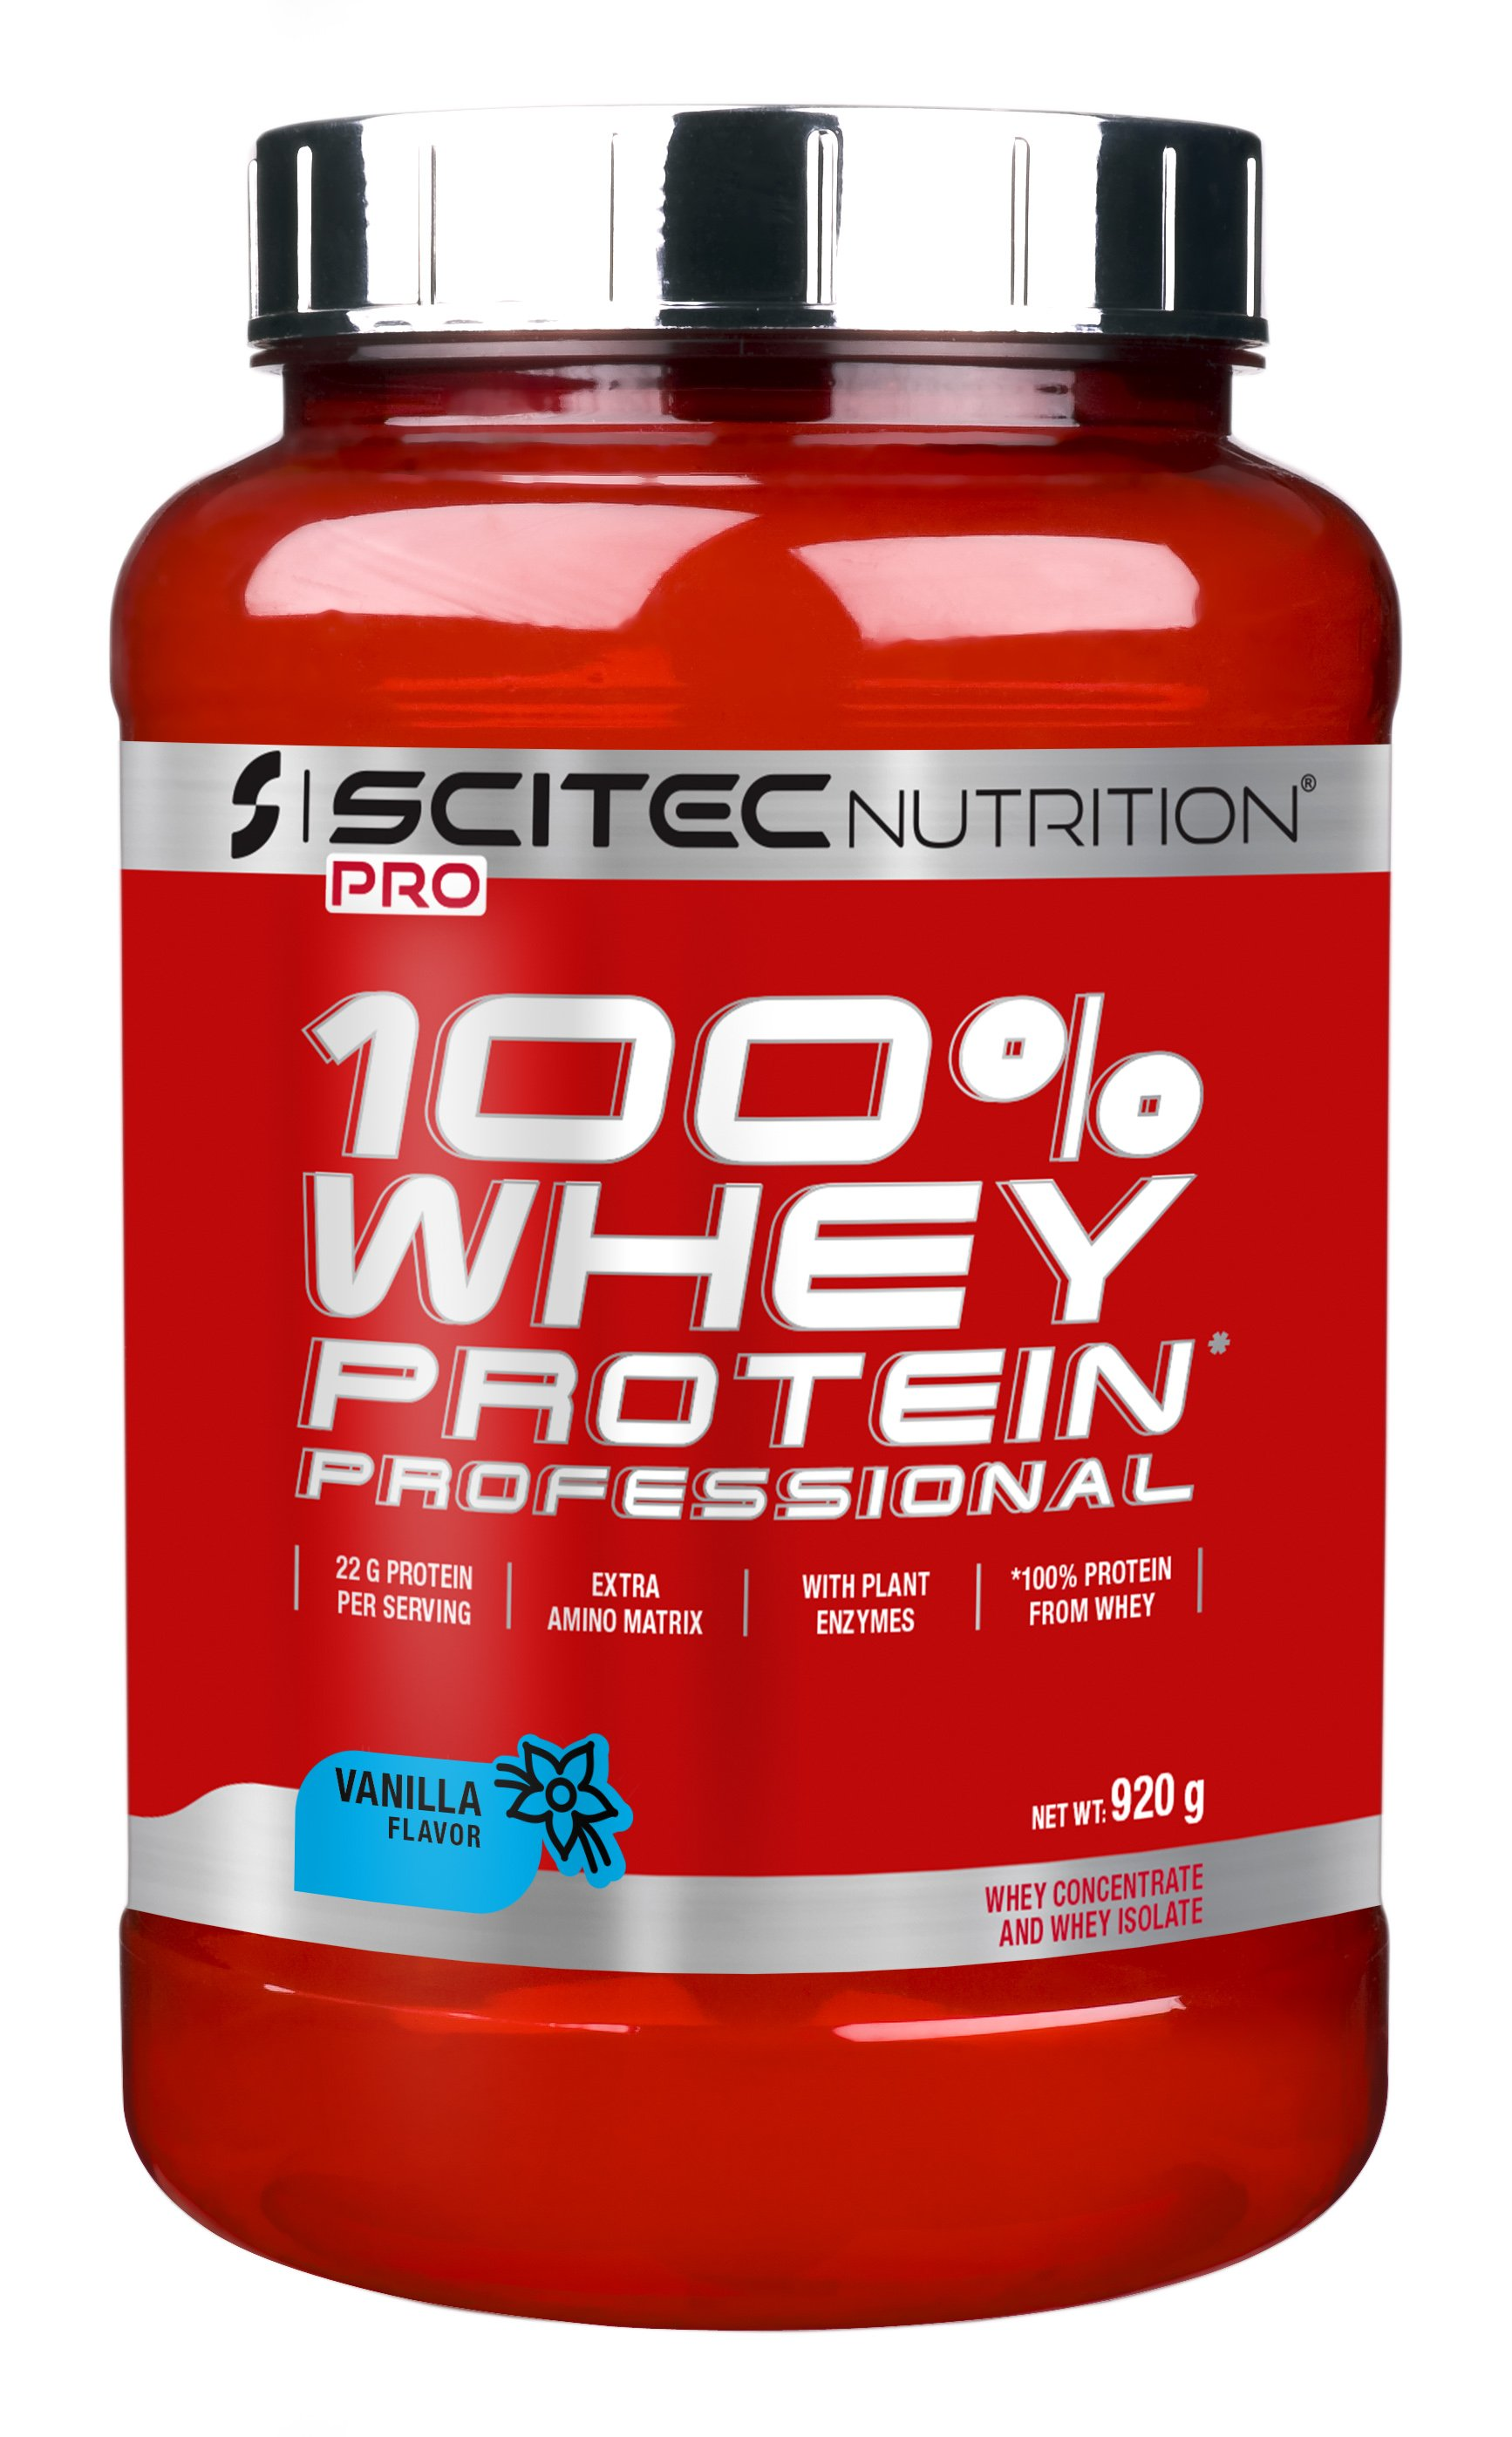 100% Whey Protein Professional - Scitec Nutrition 920 g Vanilka